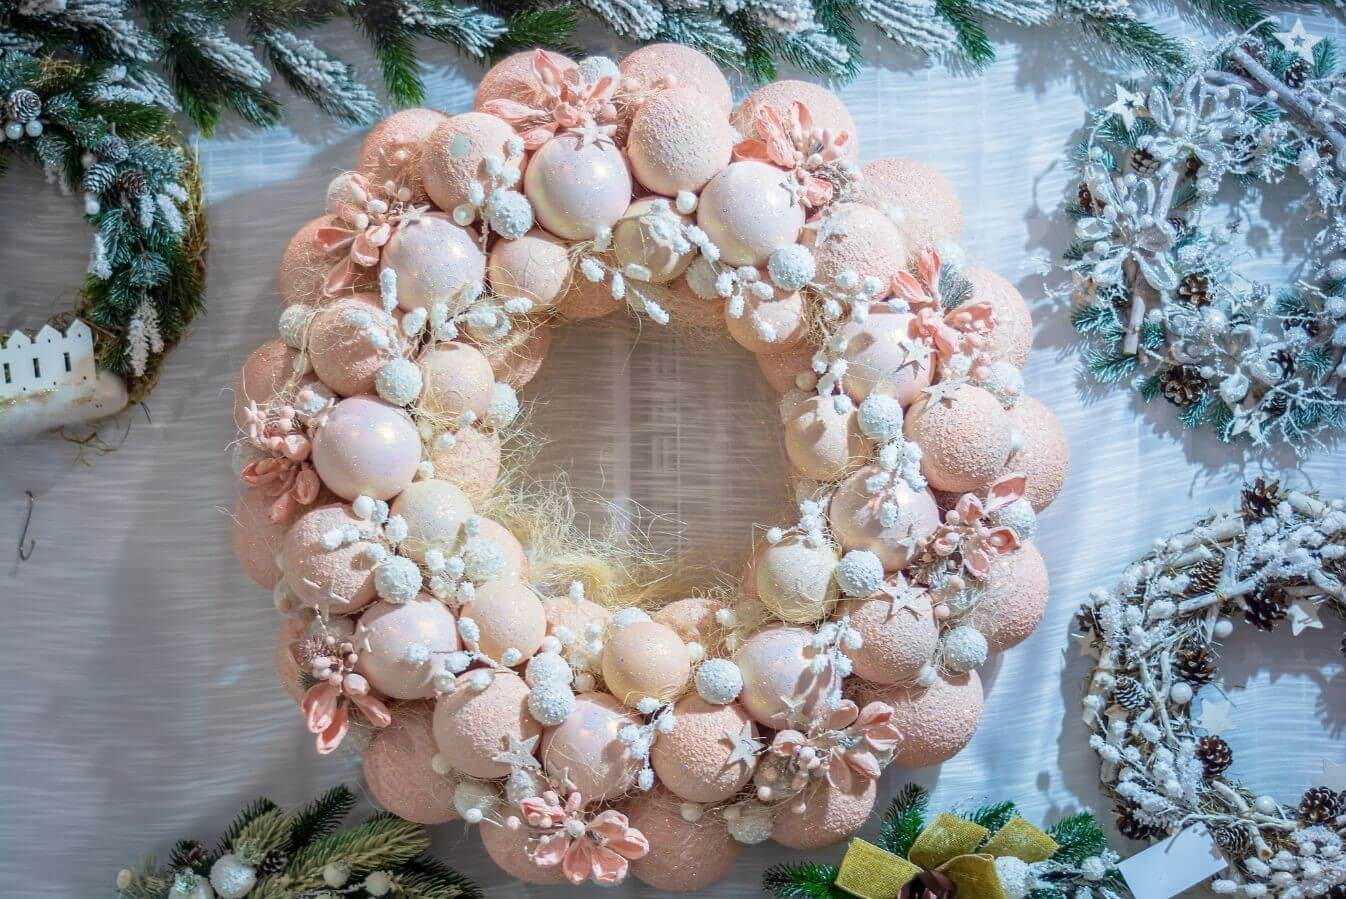 Wreath made of pastel peach coloured baubles